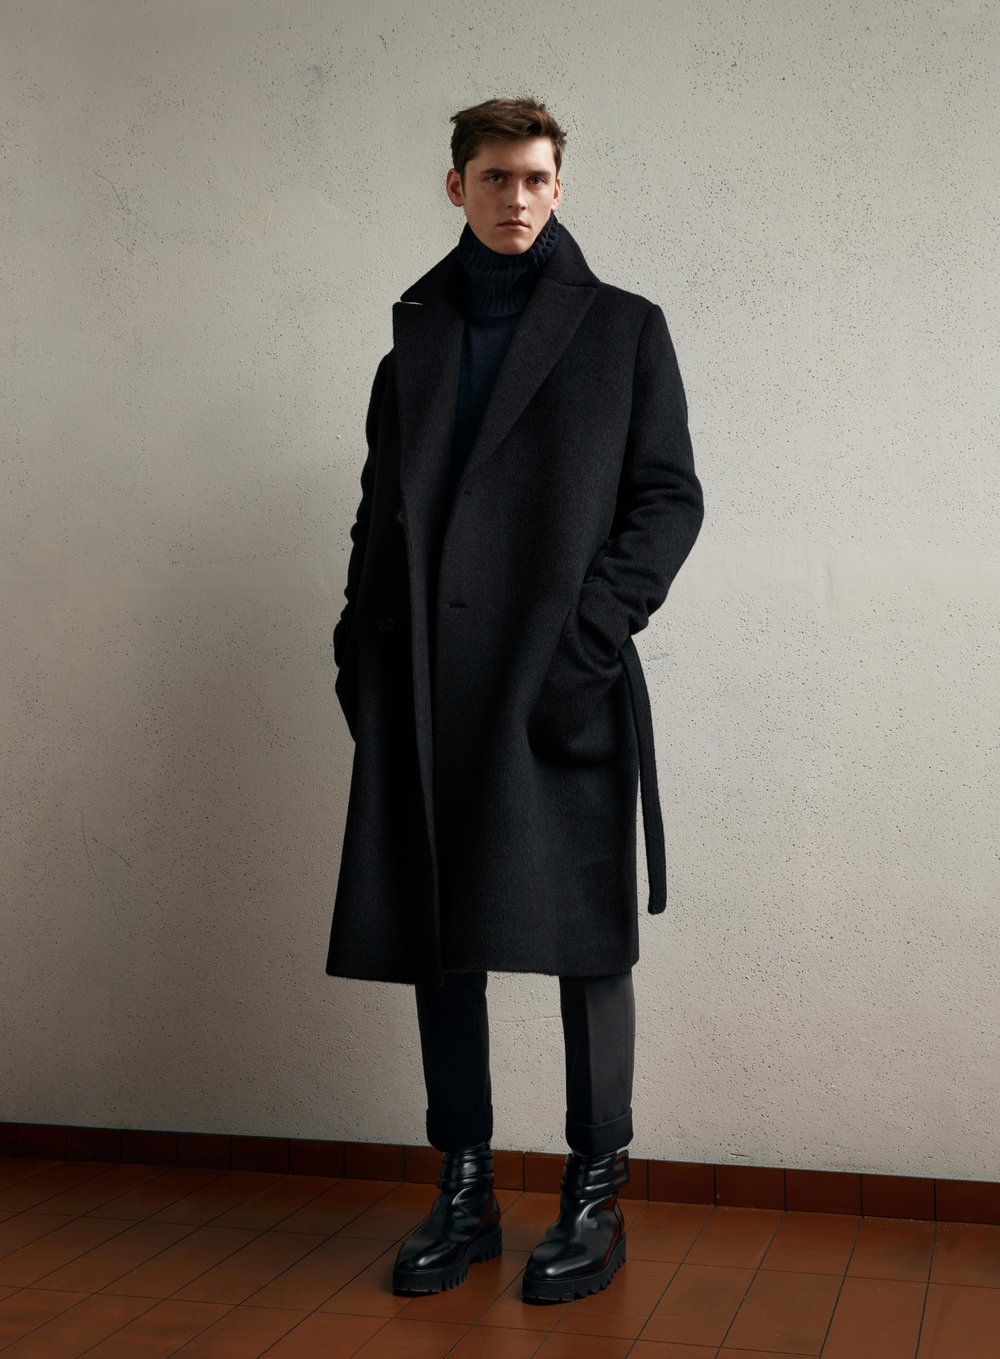 Studio wool coat, £149.99 Studio trousers, £39.99 Studio boots, £119.99